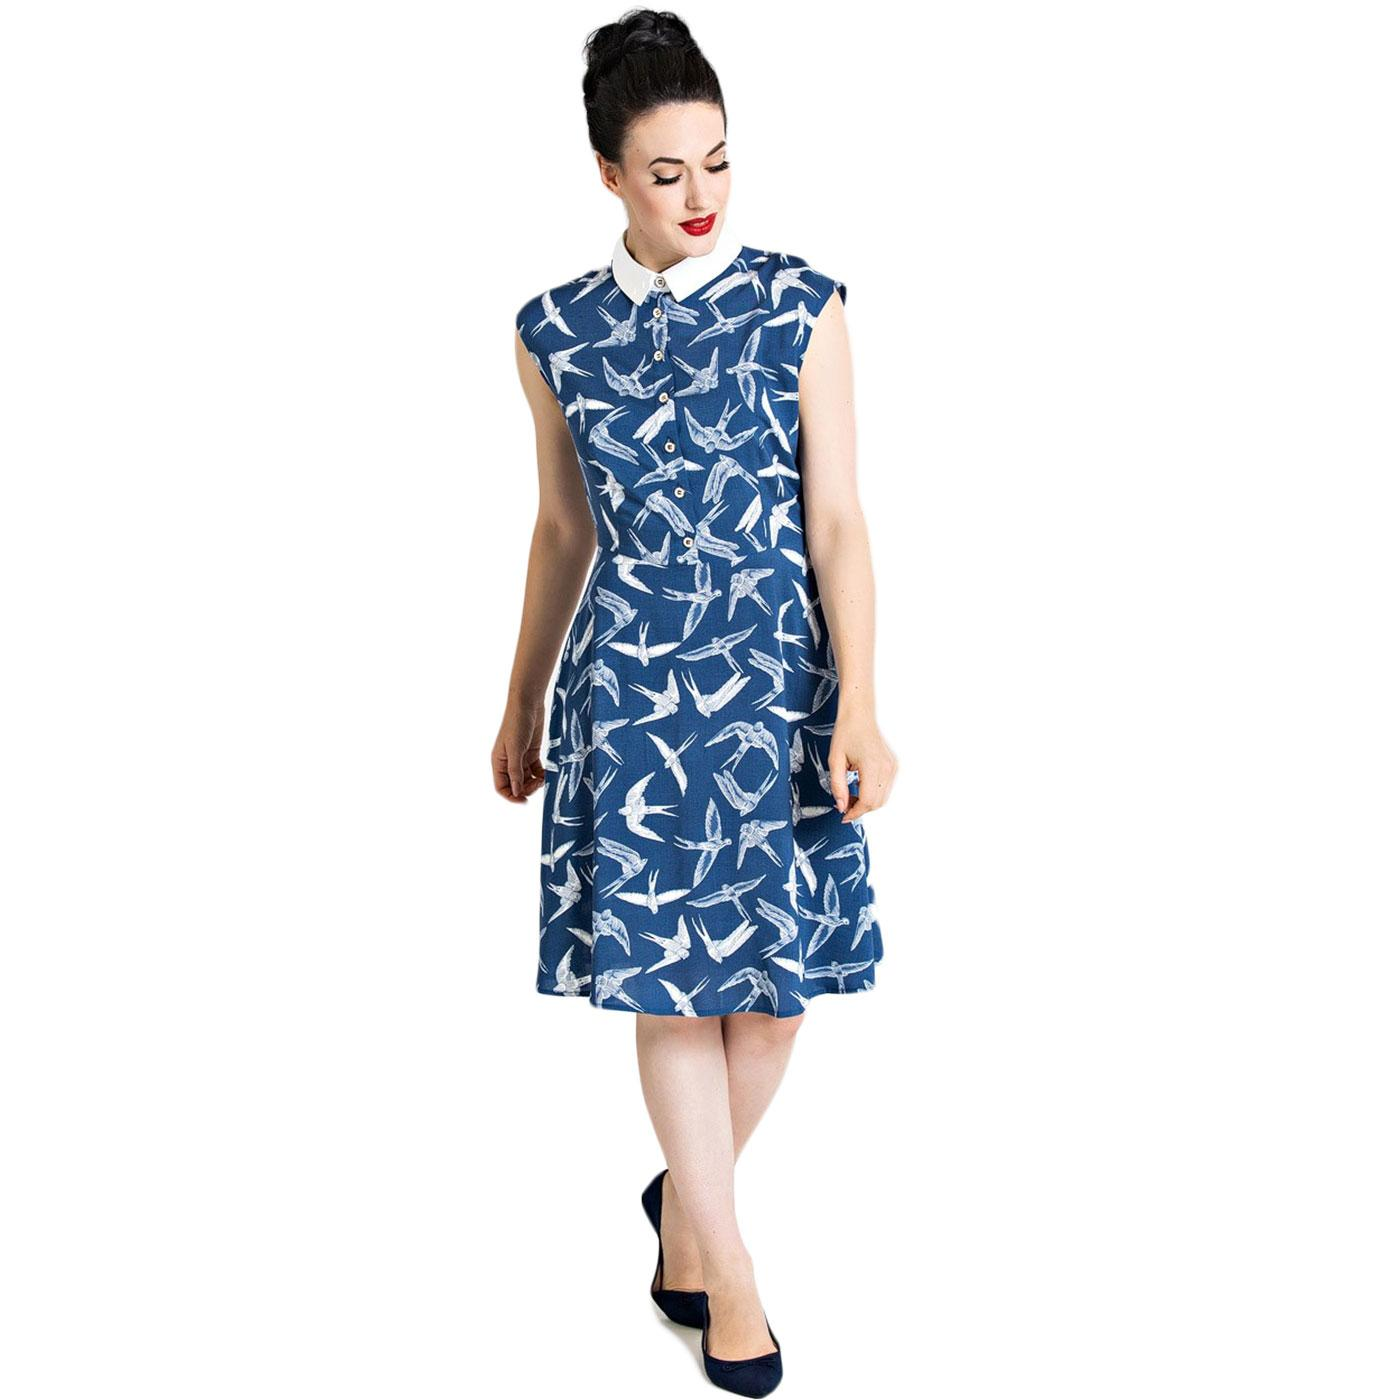 Lilou HELL BUNNY Retro 60s Swallows Mod Dress